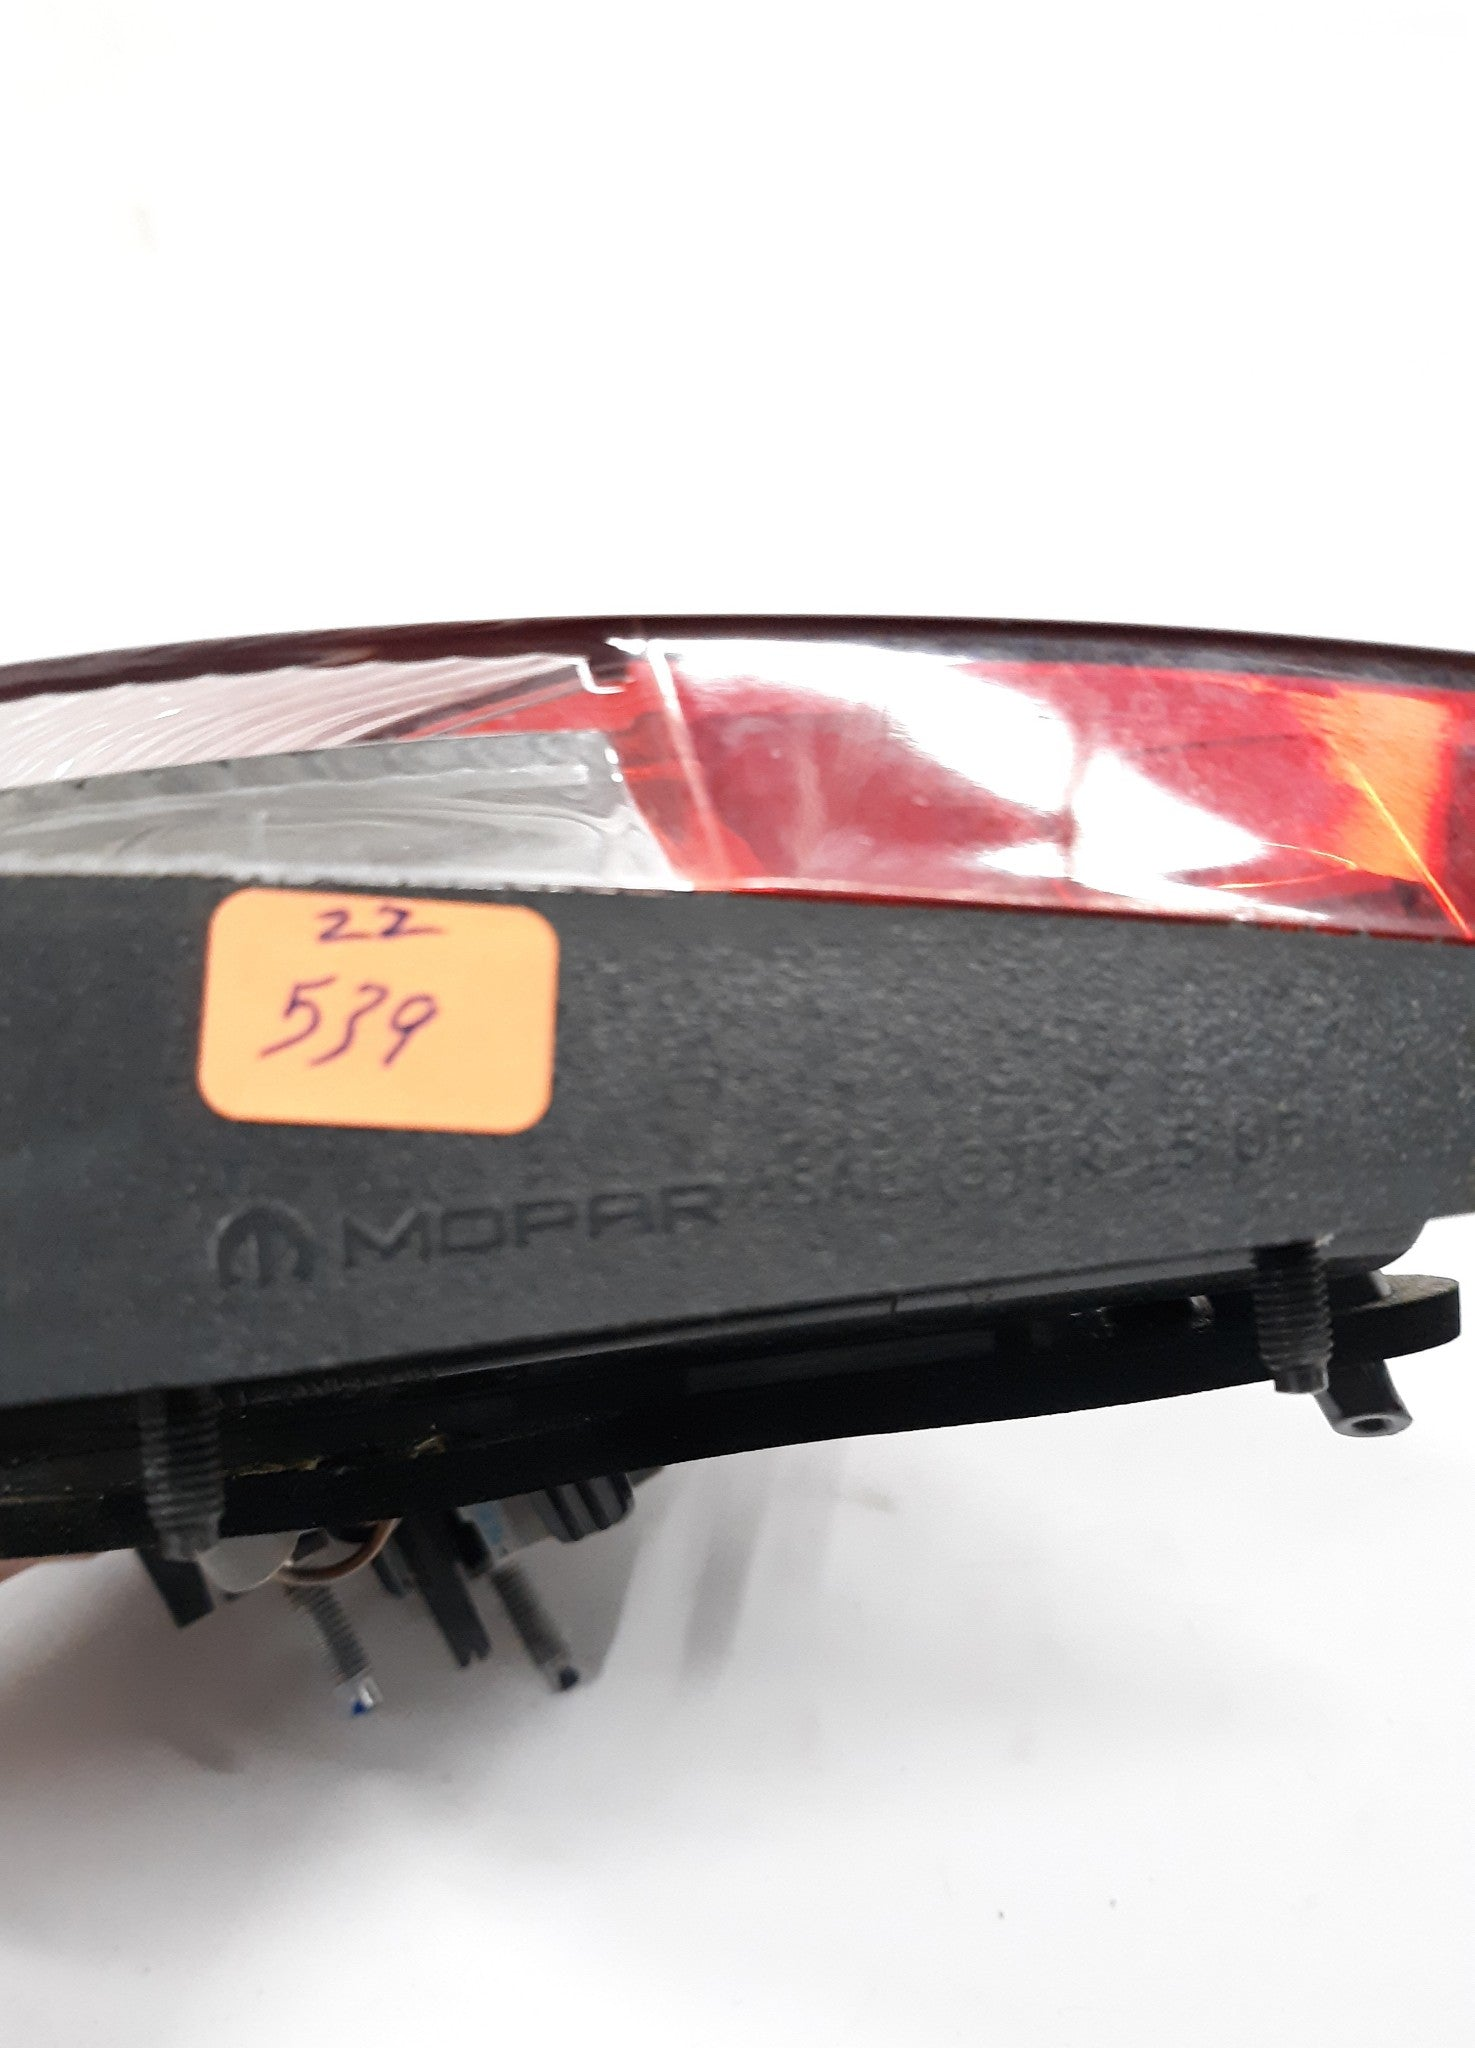 CHRYSLER 200 INNER LED TAIL LIGHT LAMP RIGHT PASSENGER SIDE 2015 2016 2017 OEM